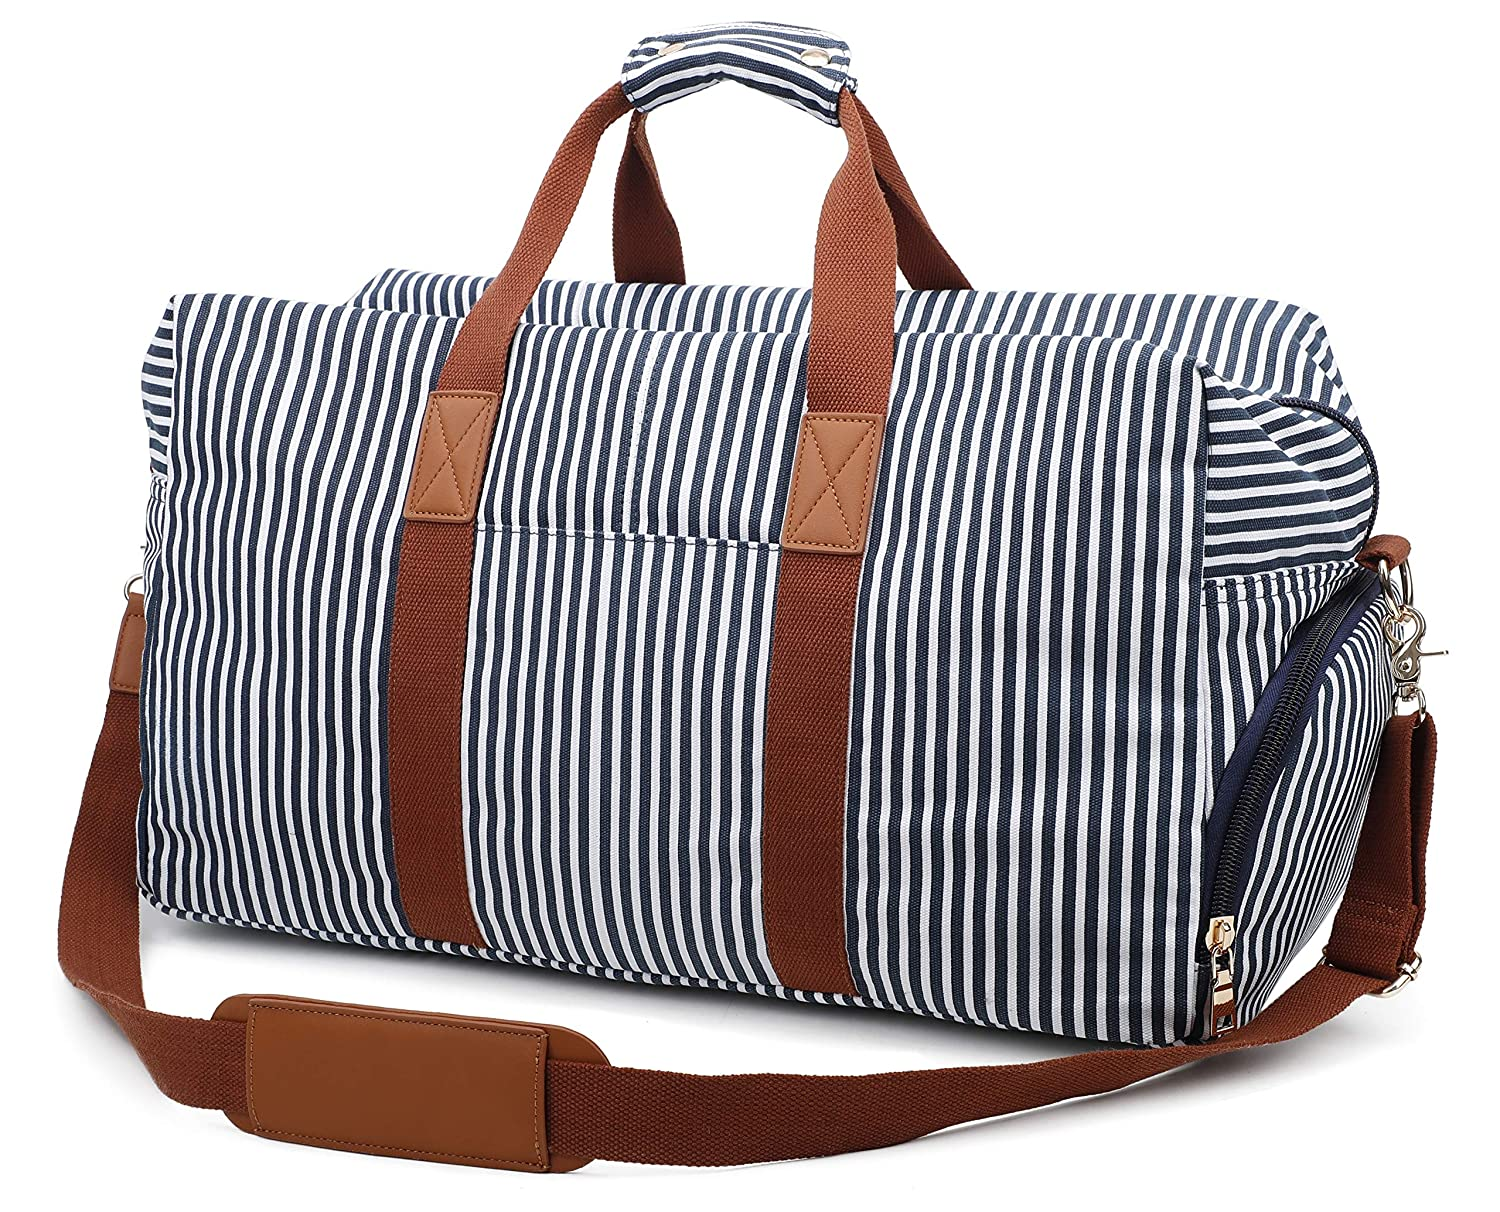 Gimay Canvas Duffel Bag Overnight Bag for Men and Women Weekender Tote Bag with Shoe Compartment Blue Stripe